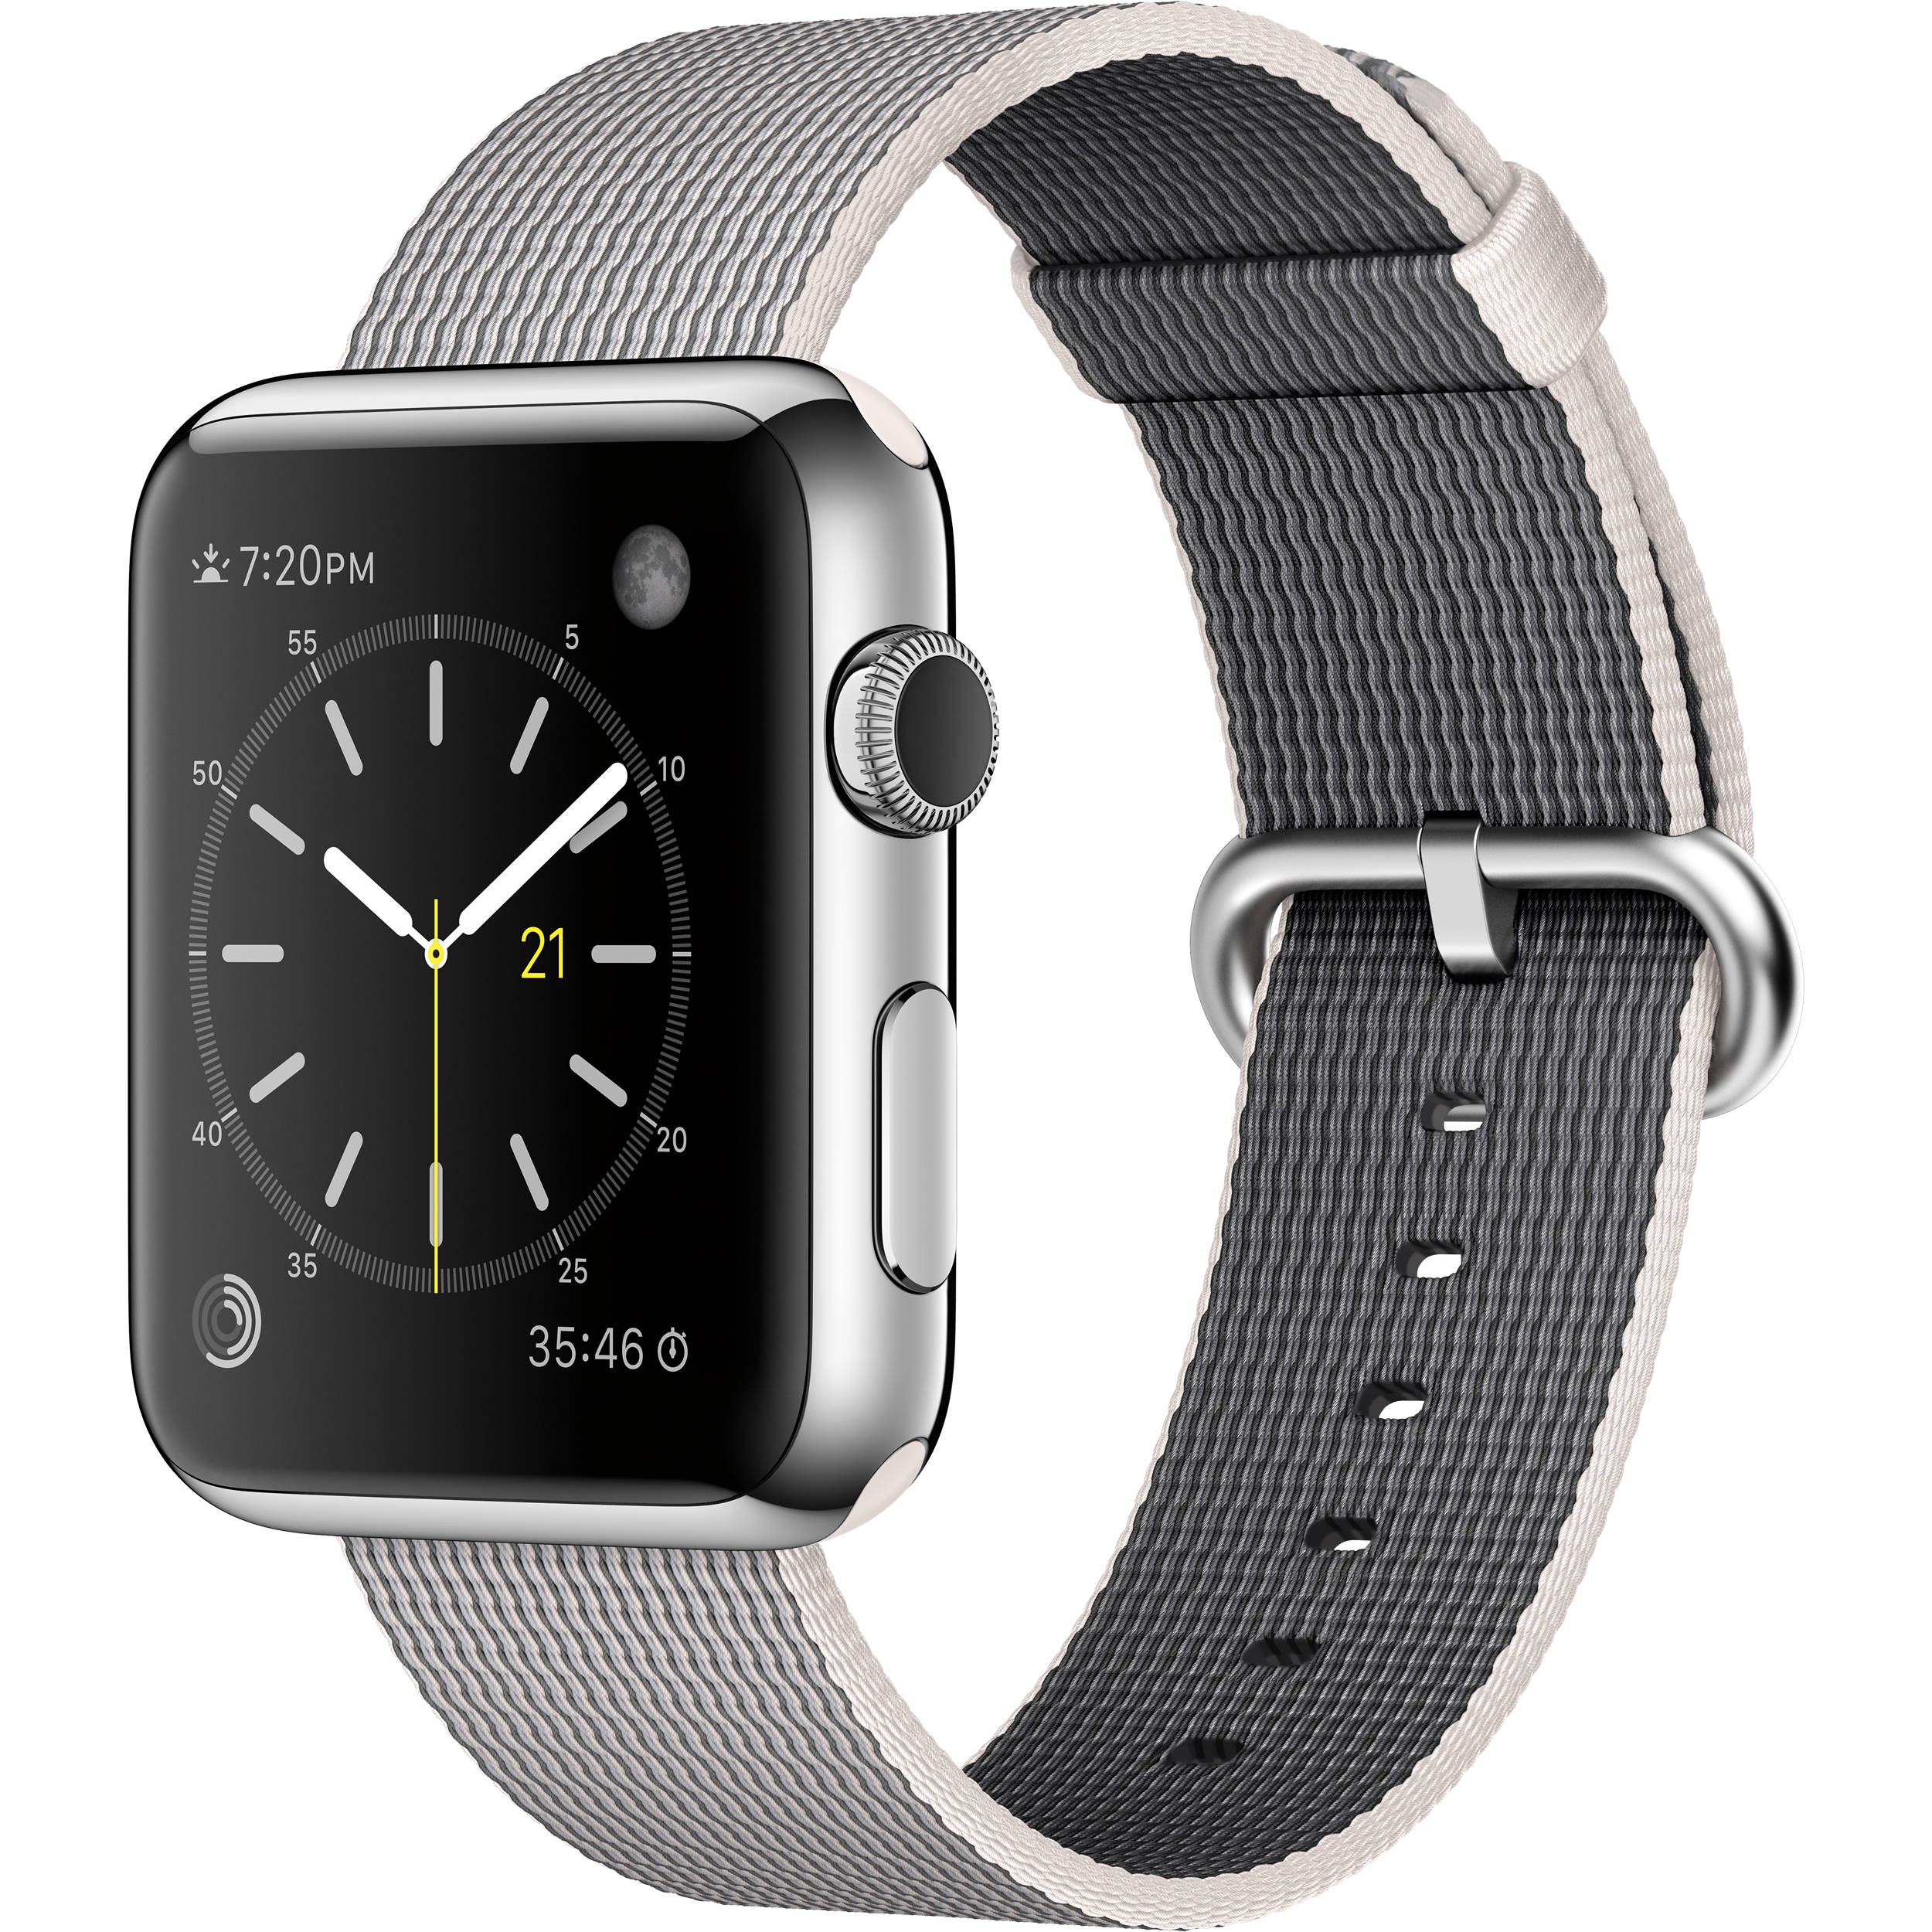 c smartwatch watch case apple milanese steel loop b h photo band video product reg stainless a watches